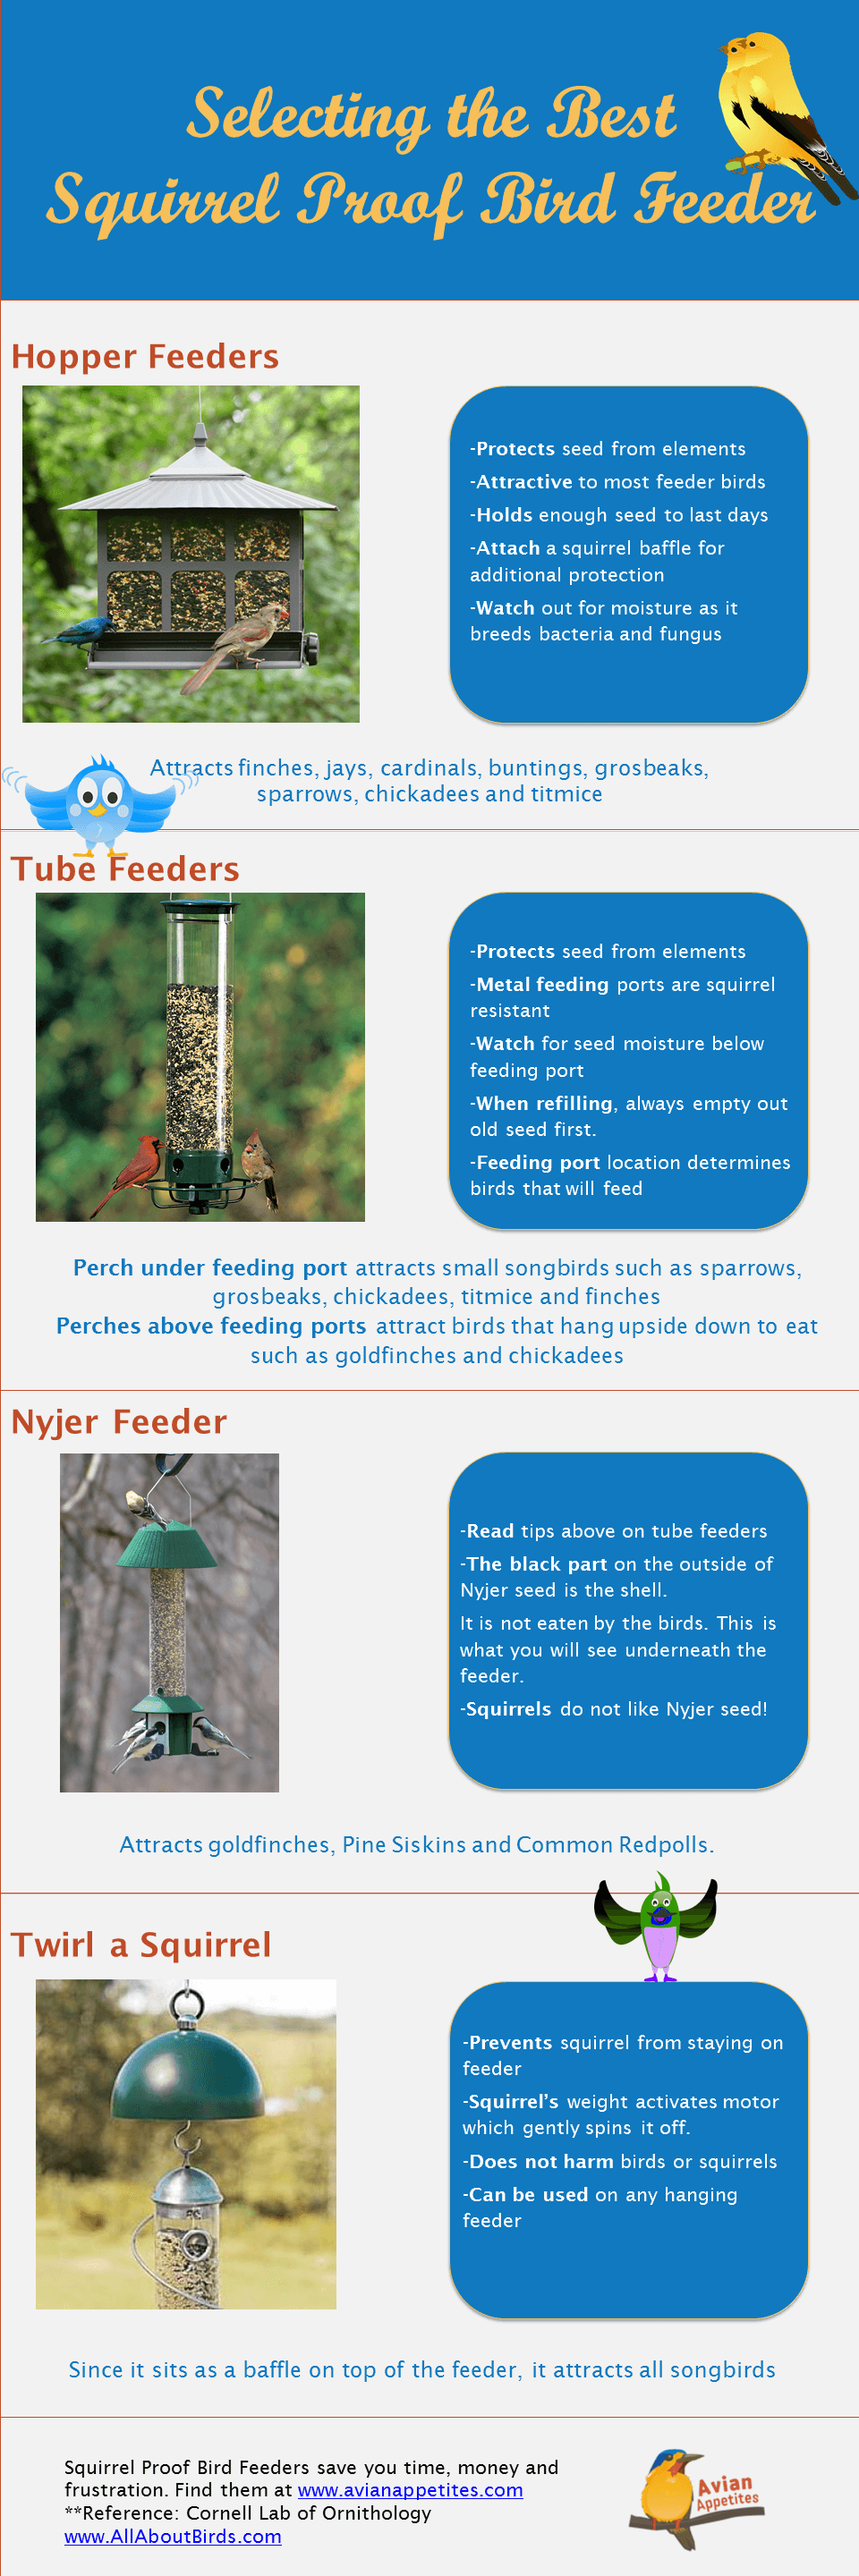 Selecting the Best Squirrel Proof Bird Feeder